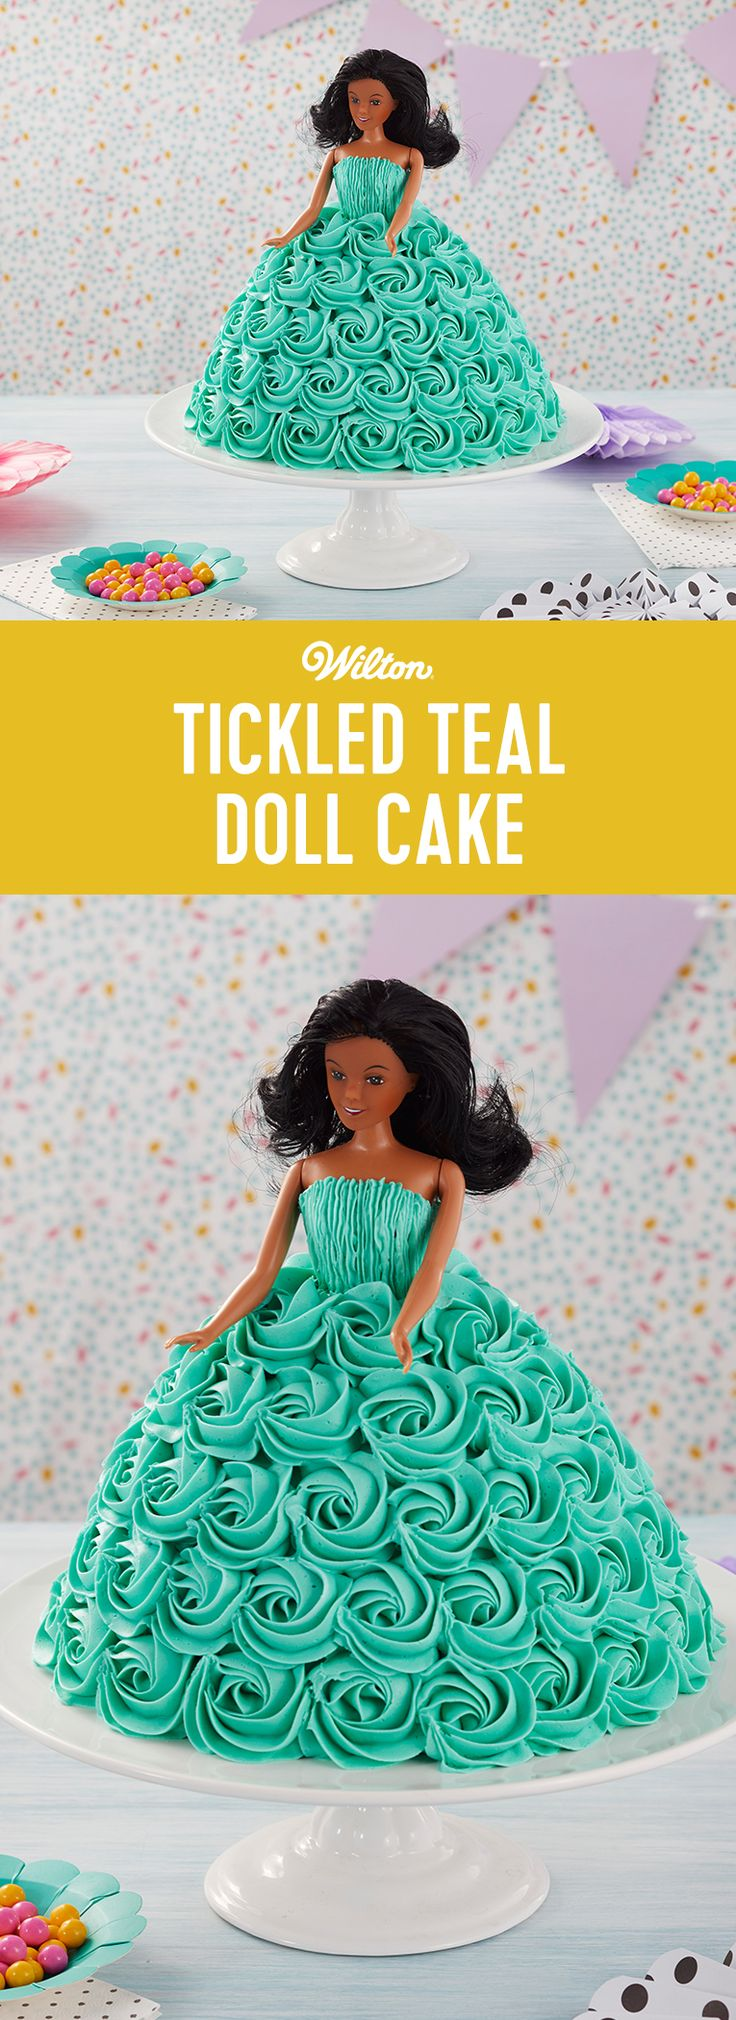 This Tickled Teal Doll Cake is ready for some fun! Showcasing a beautiful rosette-covered dress, this doll cake will be birthday ready in no time. Use the Wonder Mold cake pan to form the cake then cover it with lovely rosettes for a dress that is sure to make any birthday girl happy! A quick and easy cake for beginning decorators, this Tickled Teal Doll Cake is sure to become a well-loved treat for all! #wiltoncakes #cakes #dollcake #wondermold #birthday #buttercream #birthdayparty